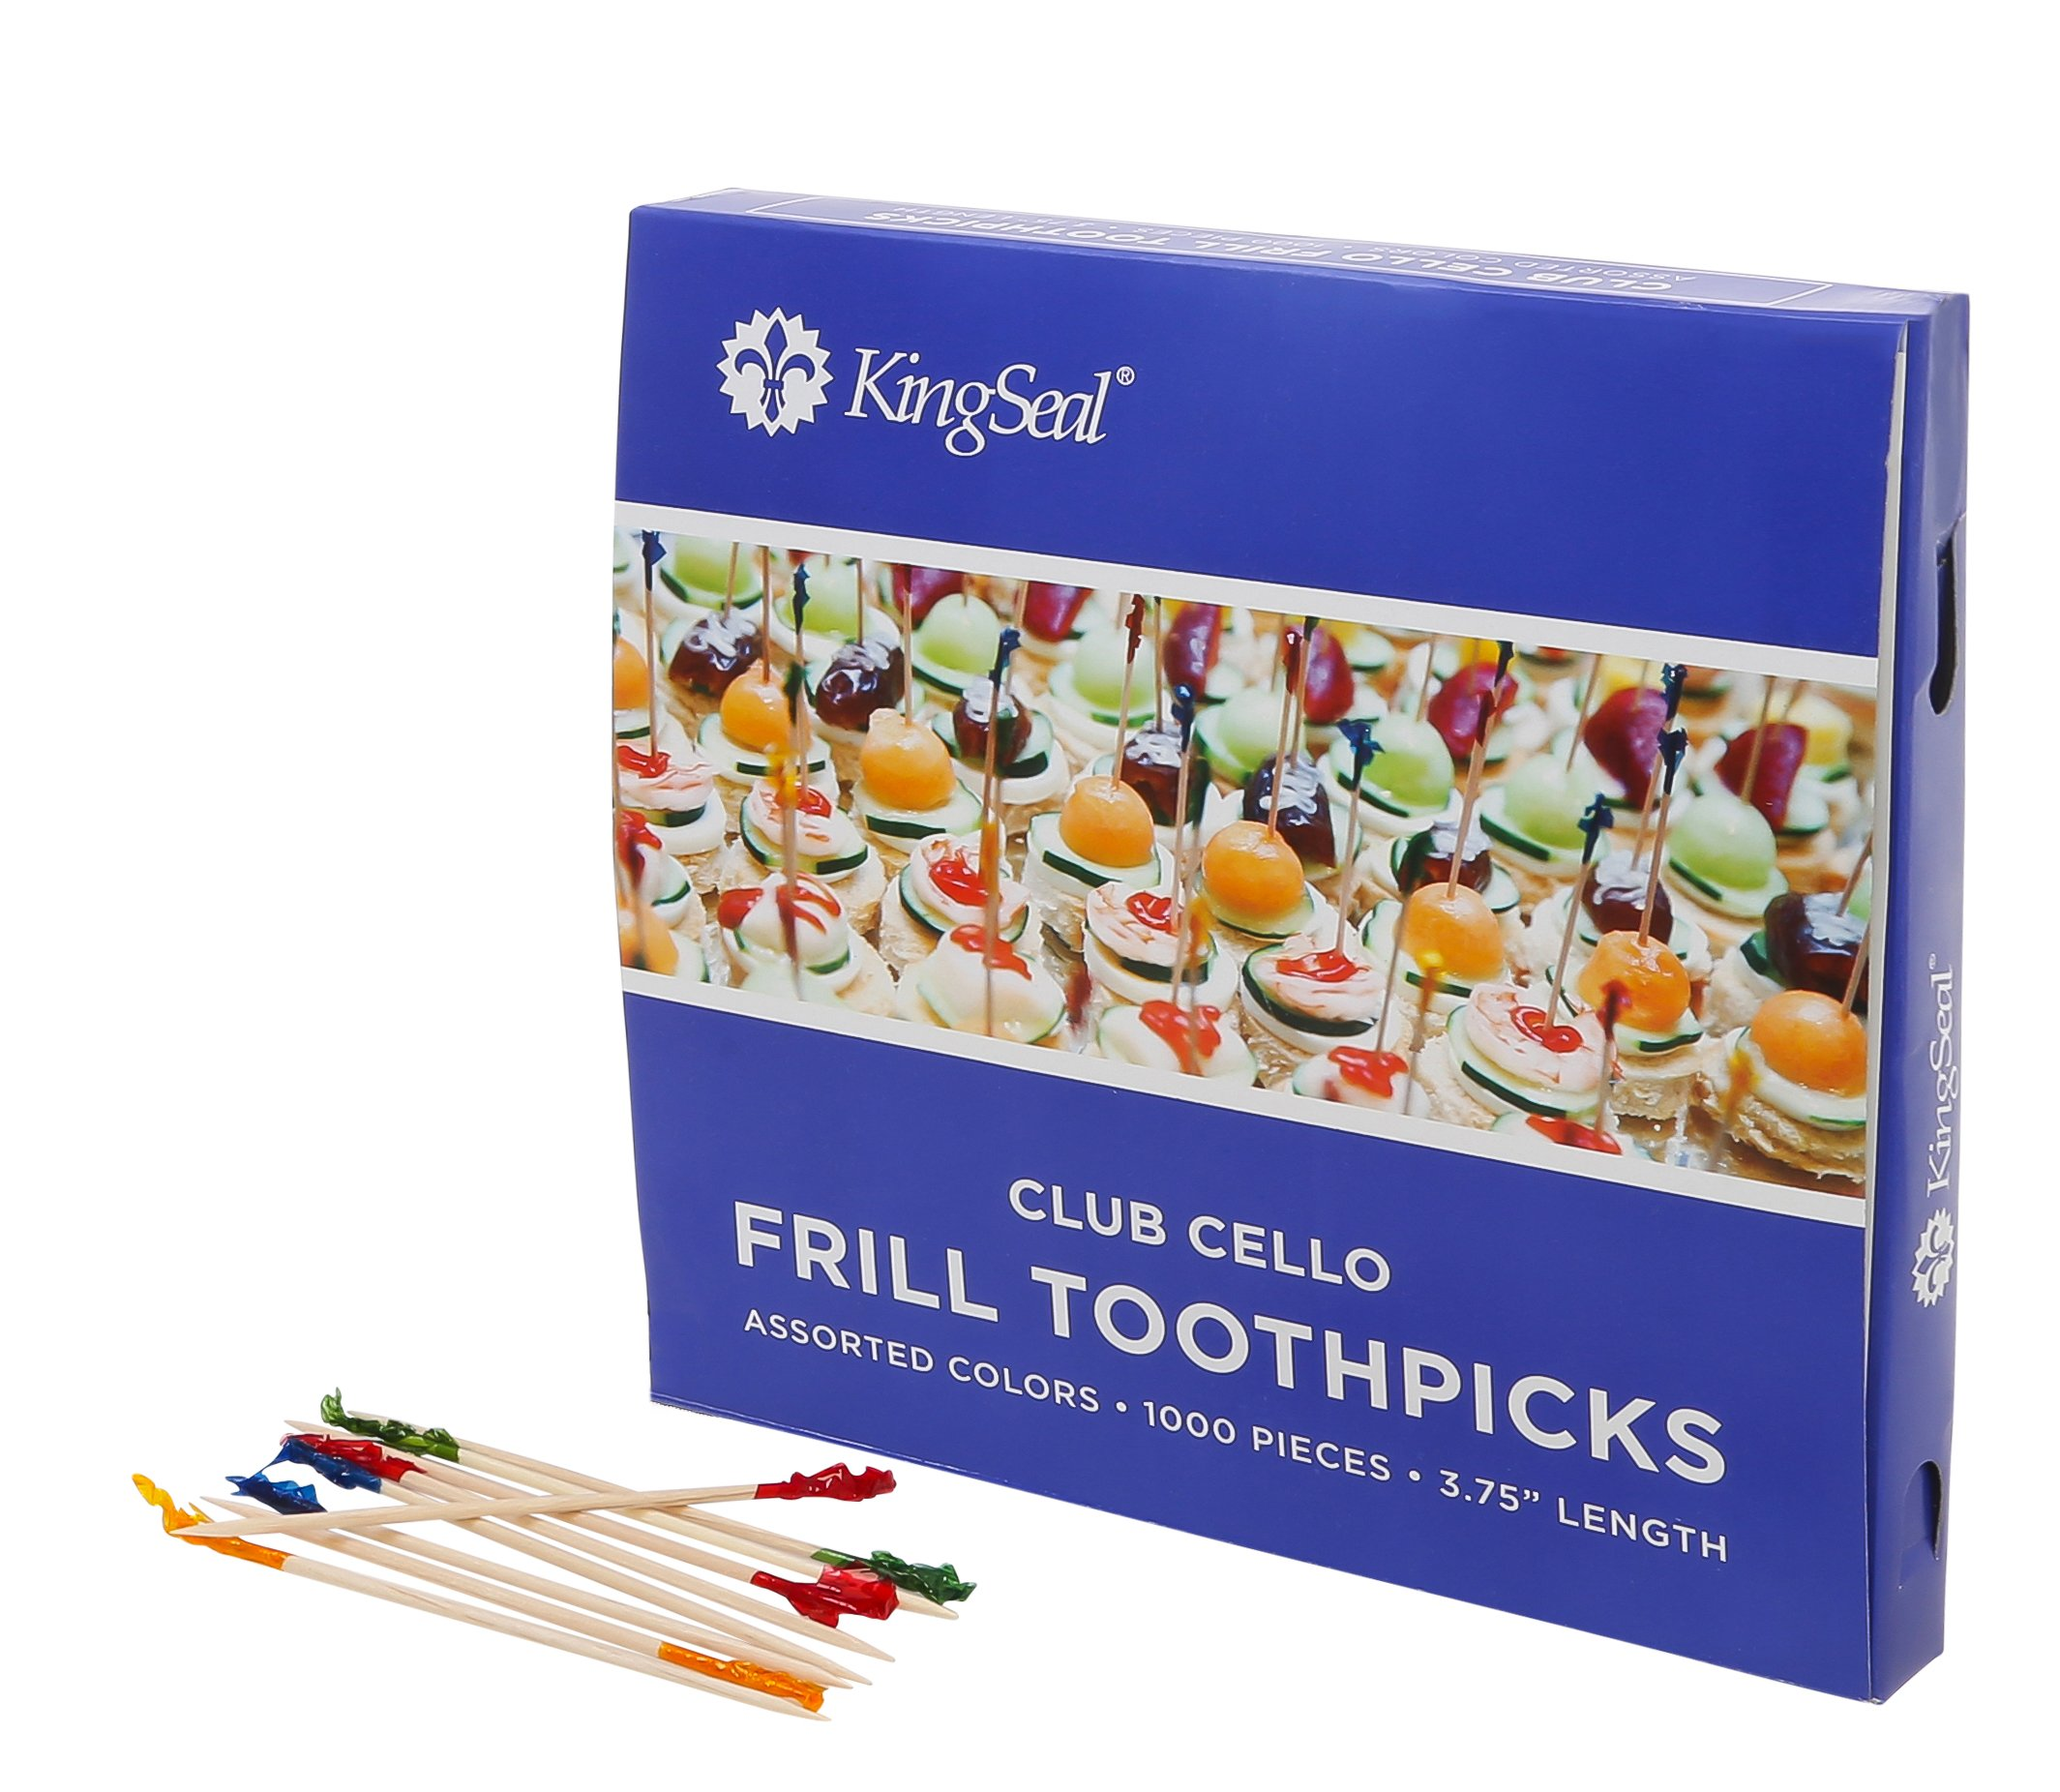 KingSeal Club Frill Sandwich Toothpicks, Assorted Colors, 3.75 Inch Length, Natural Birch Wood - 5 Pack/1000 per Pack by KingSeal